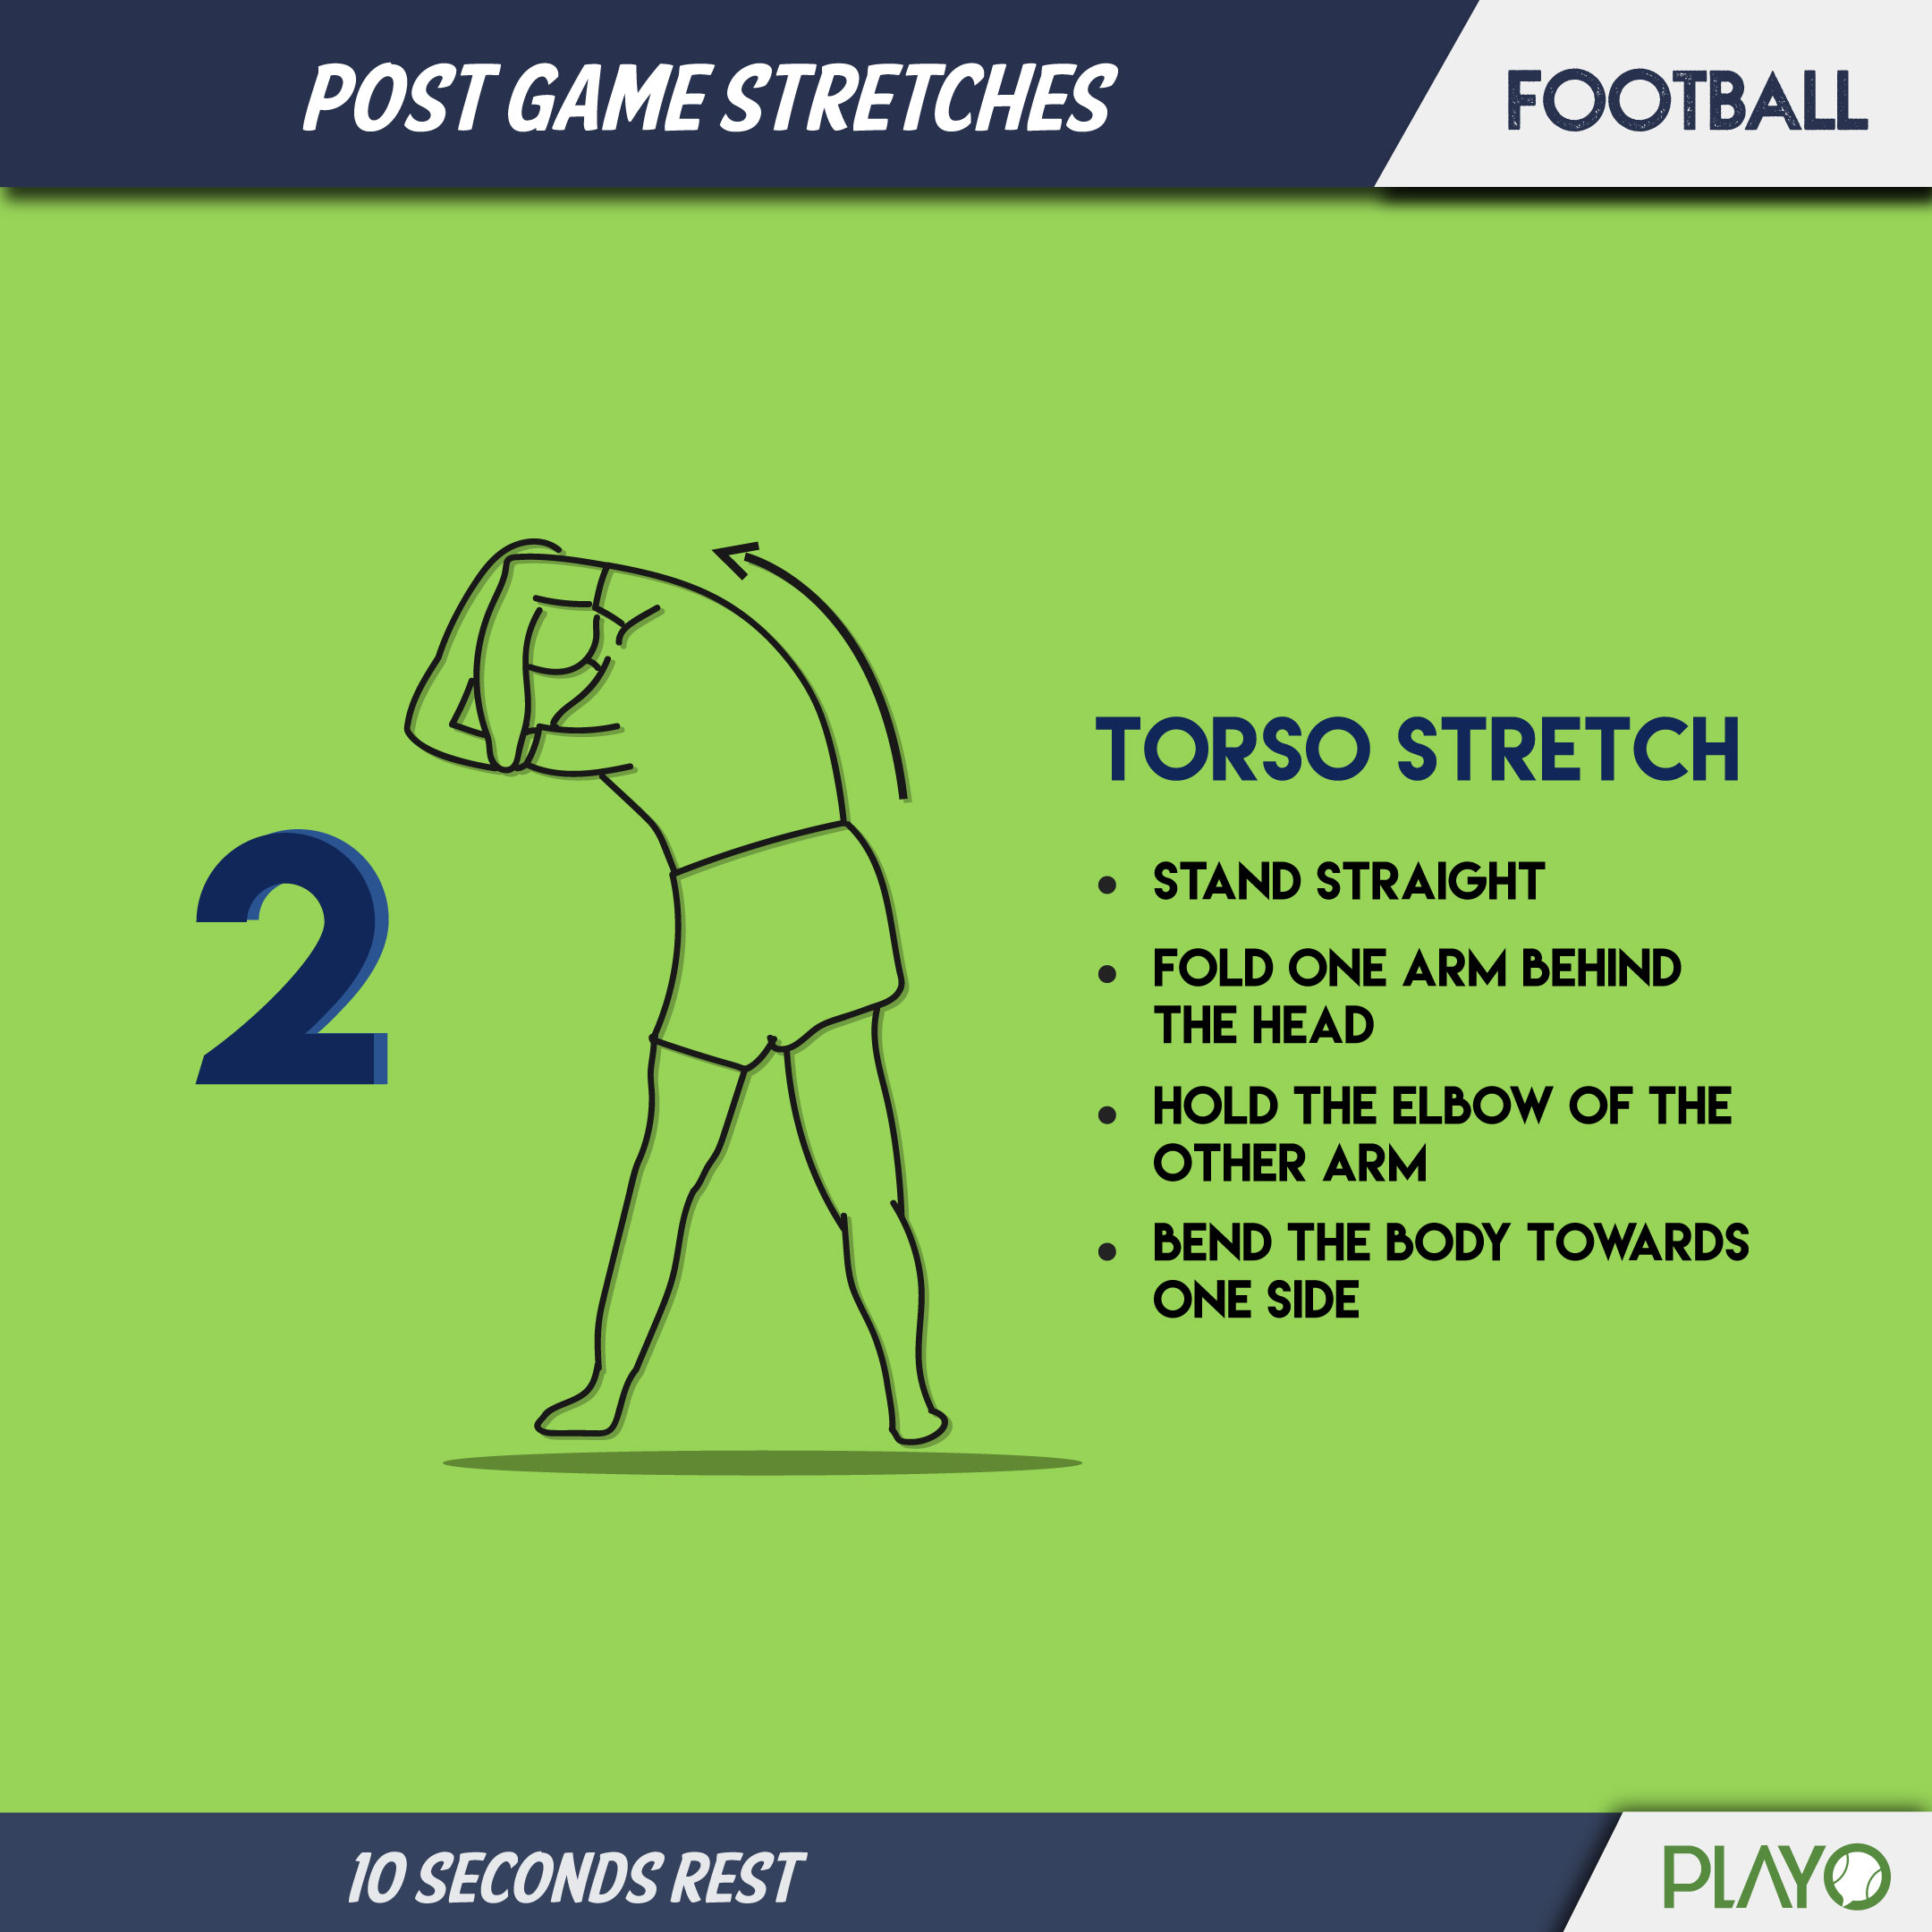 Torso stretch for cool down after football